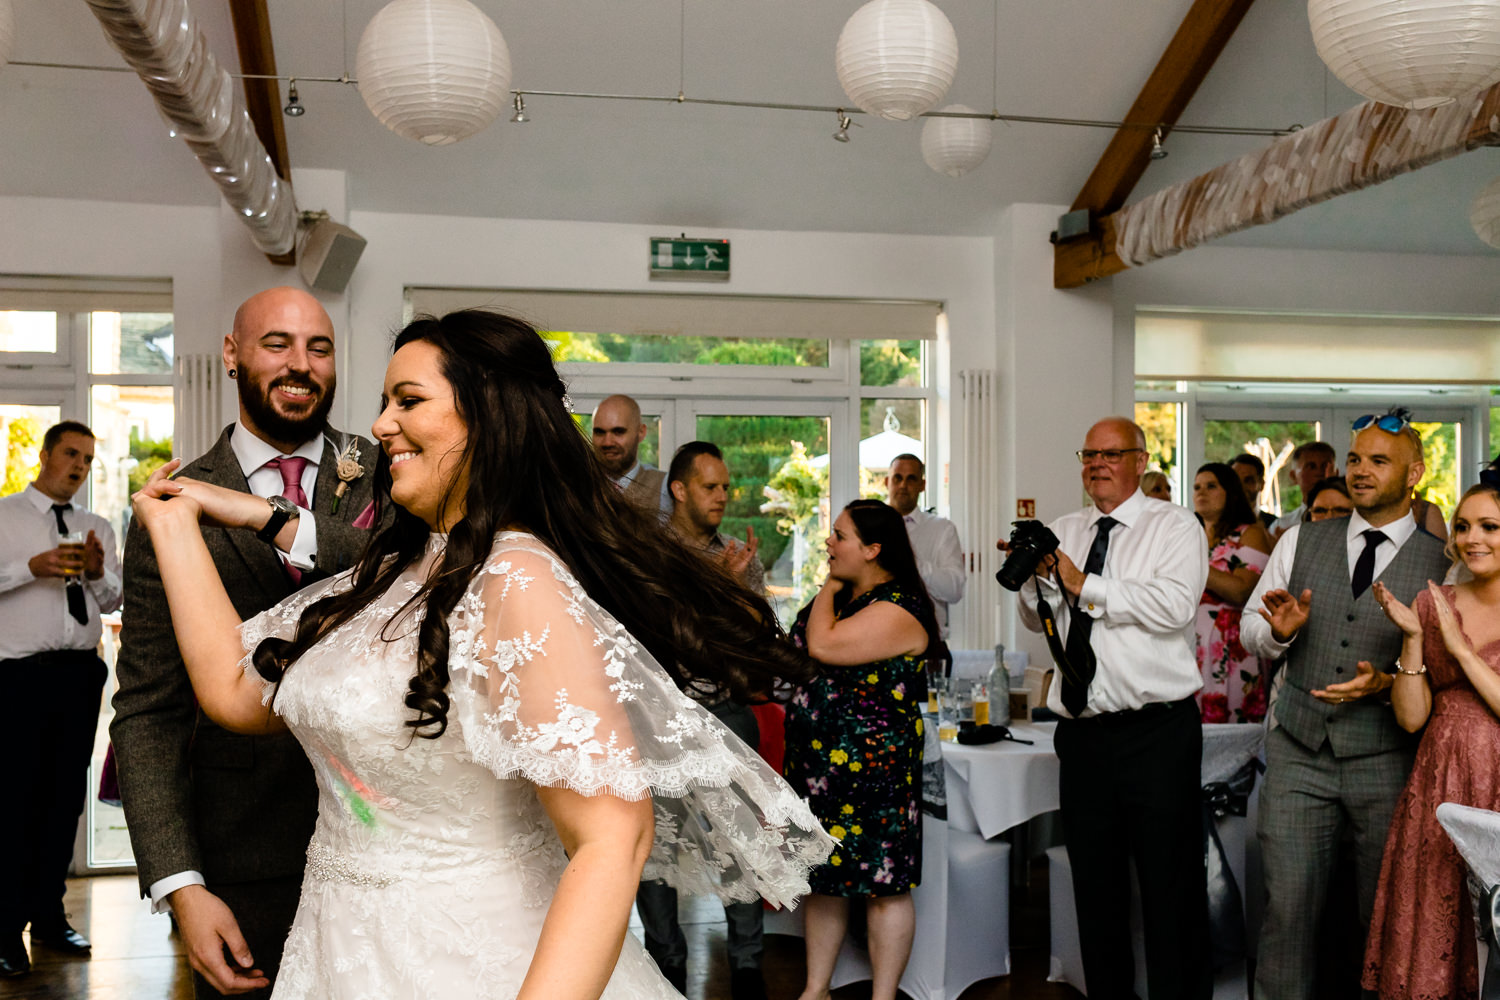 Rochdale-Wedding-Photographer-117.jpg